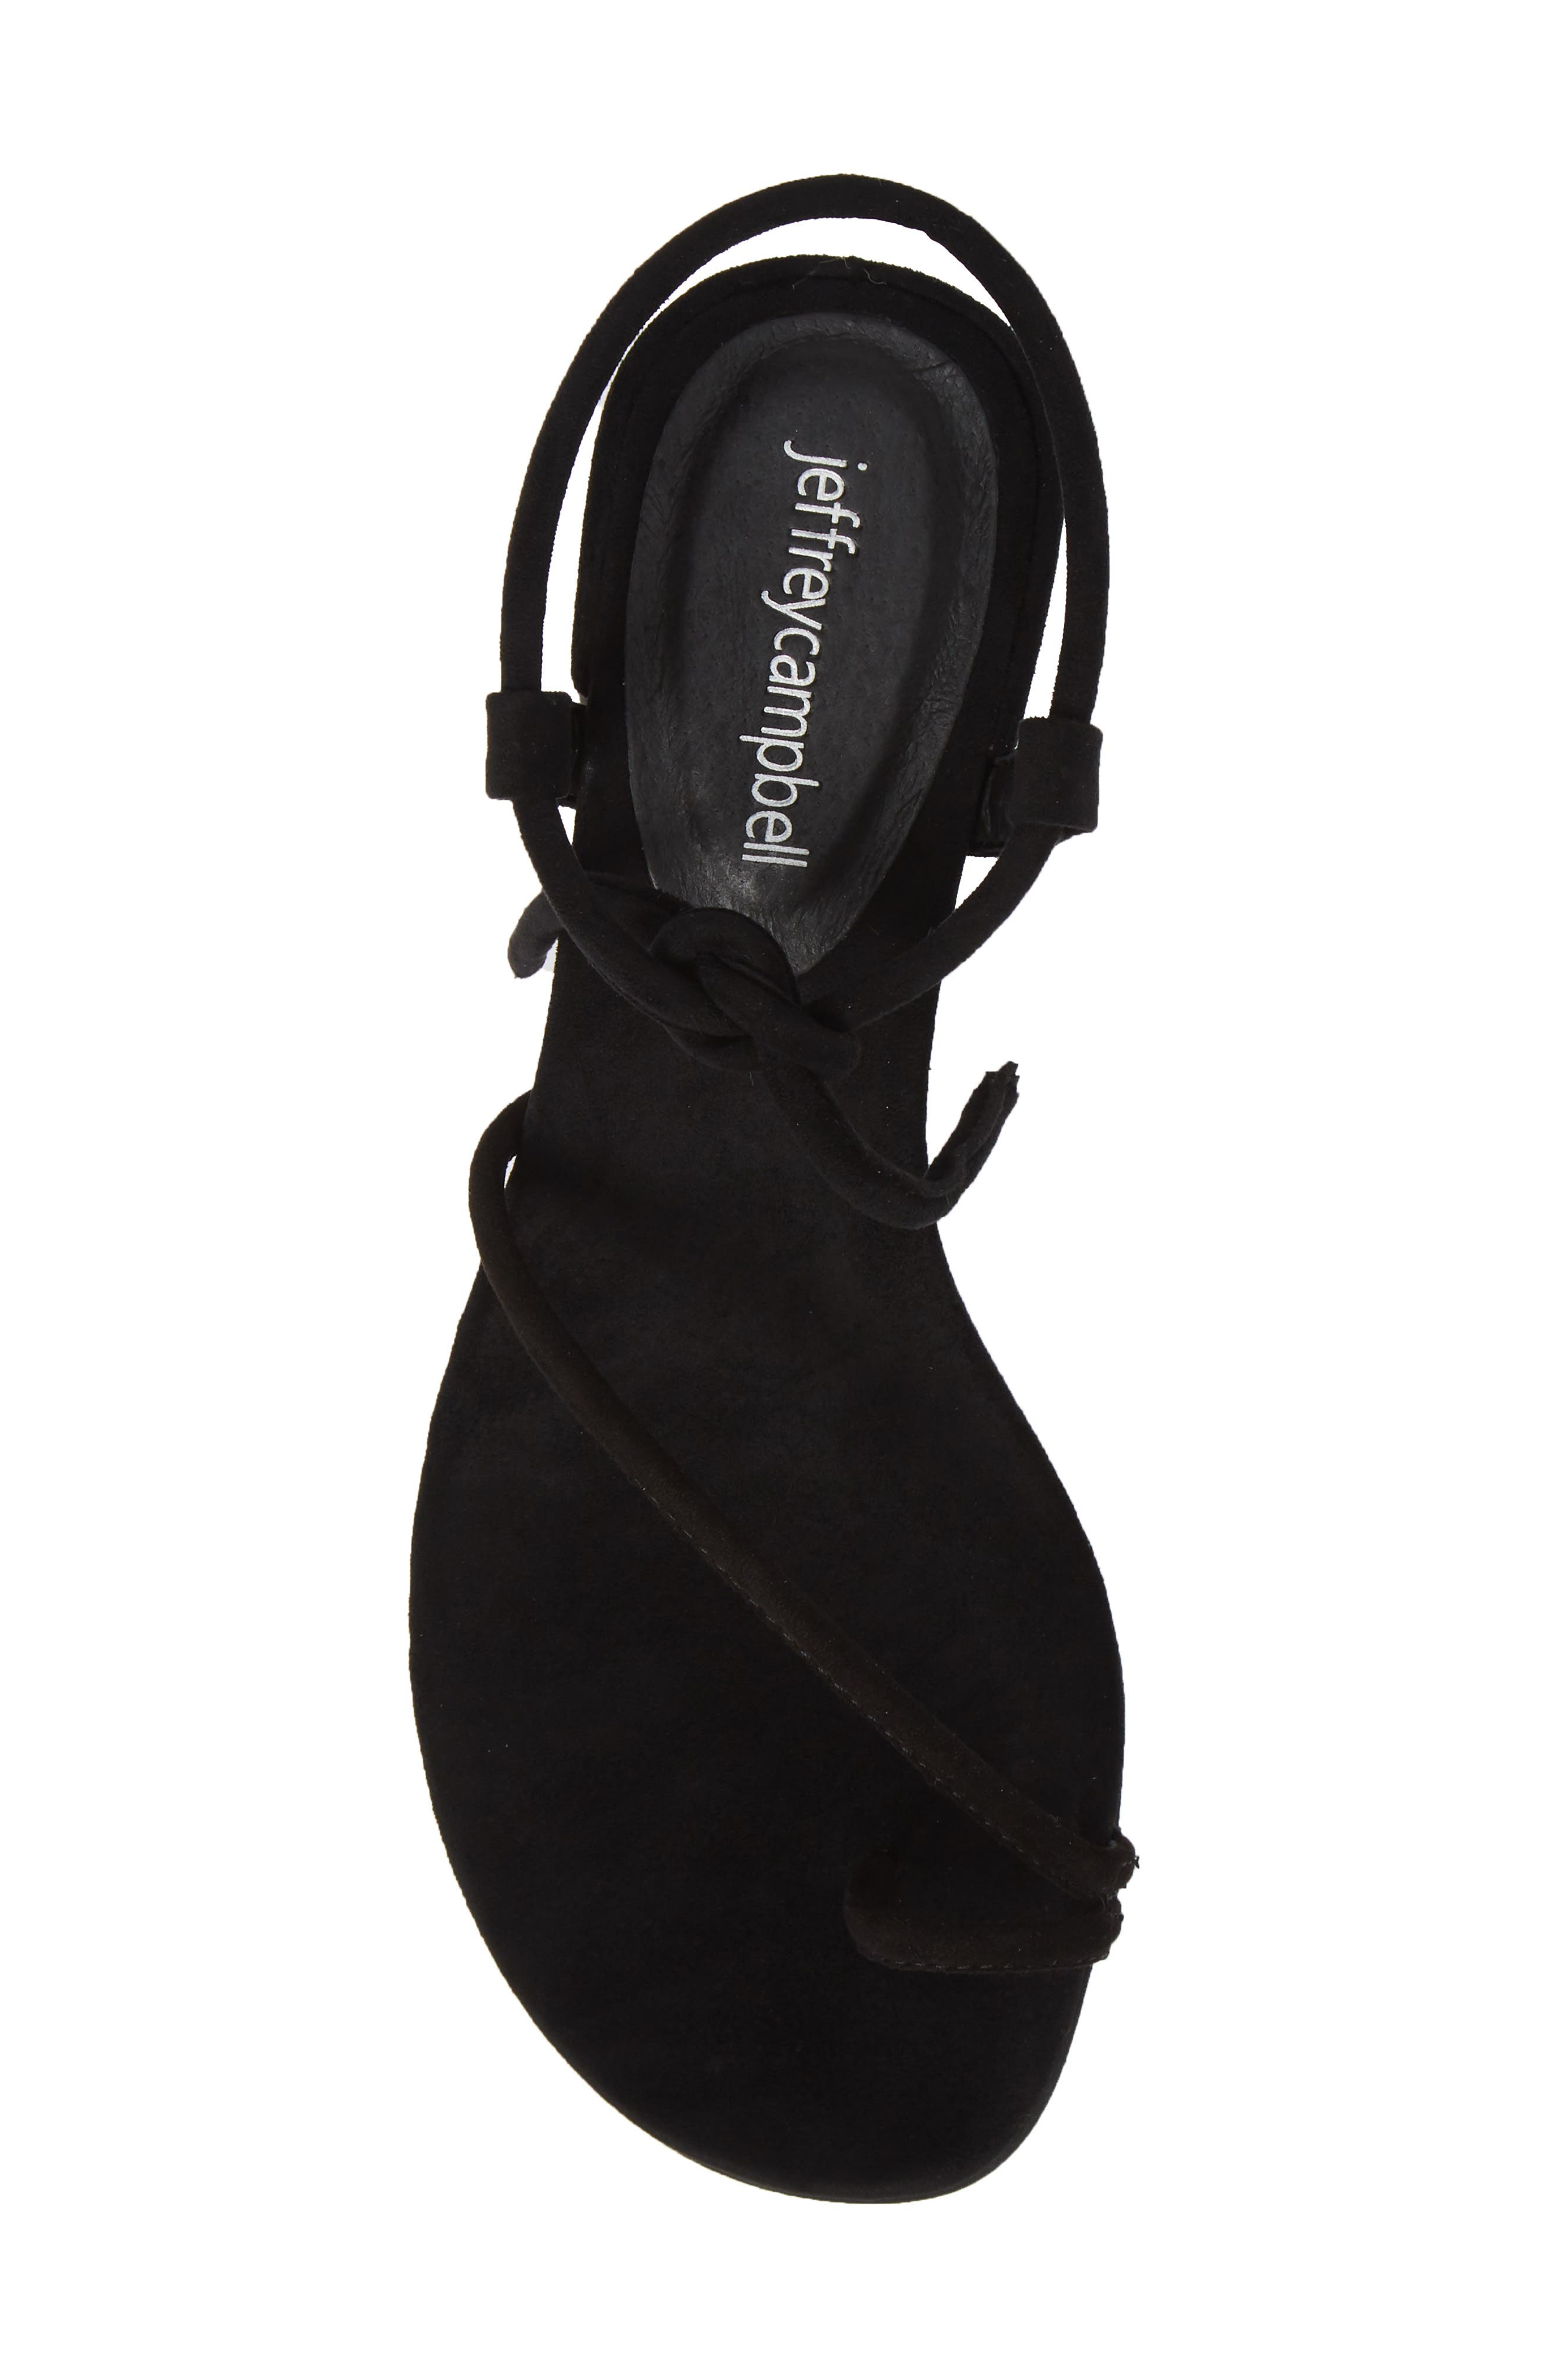 JEFFREY CAMPBELL, Strappy Sandal, Alternate thumbnail 5, color, 005